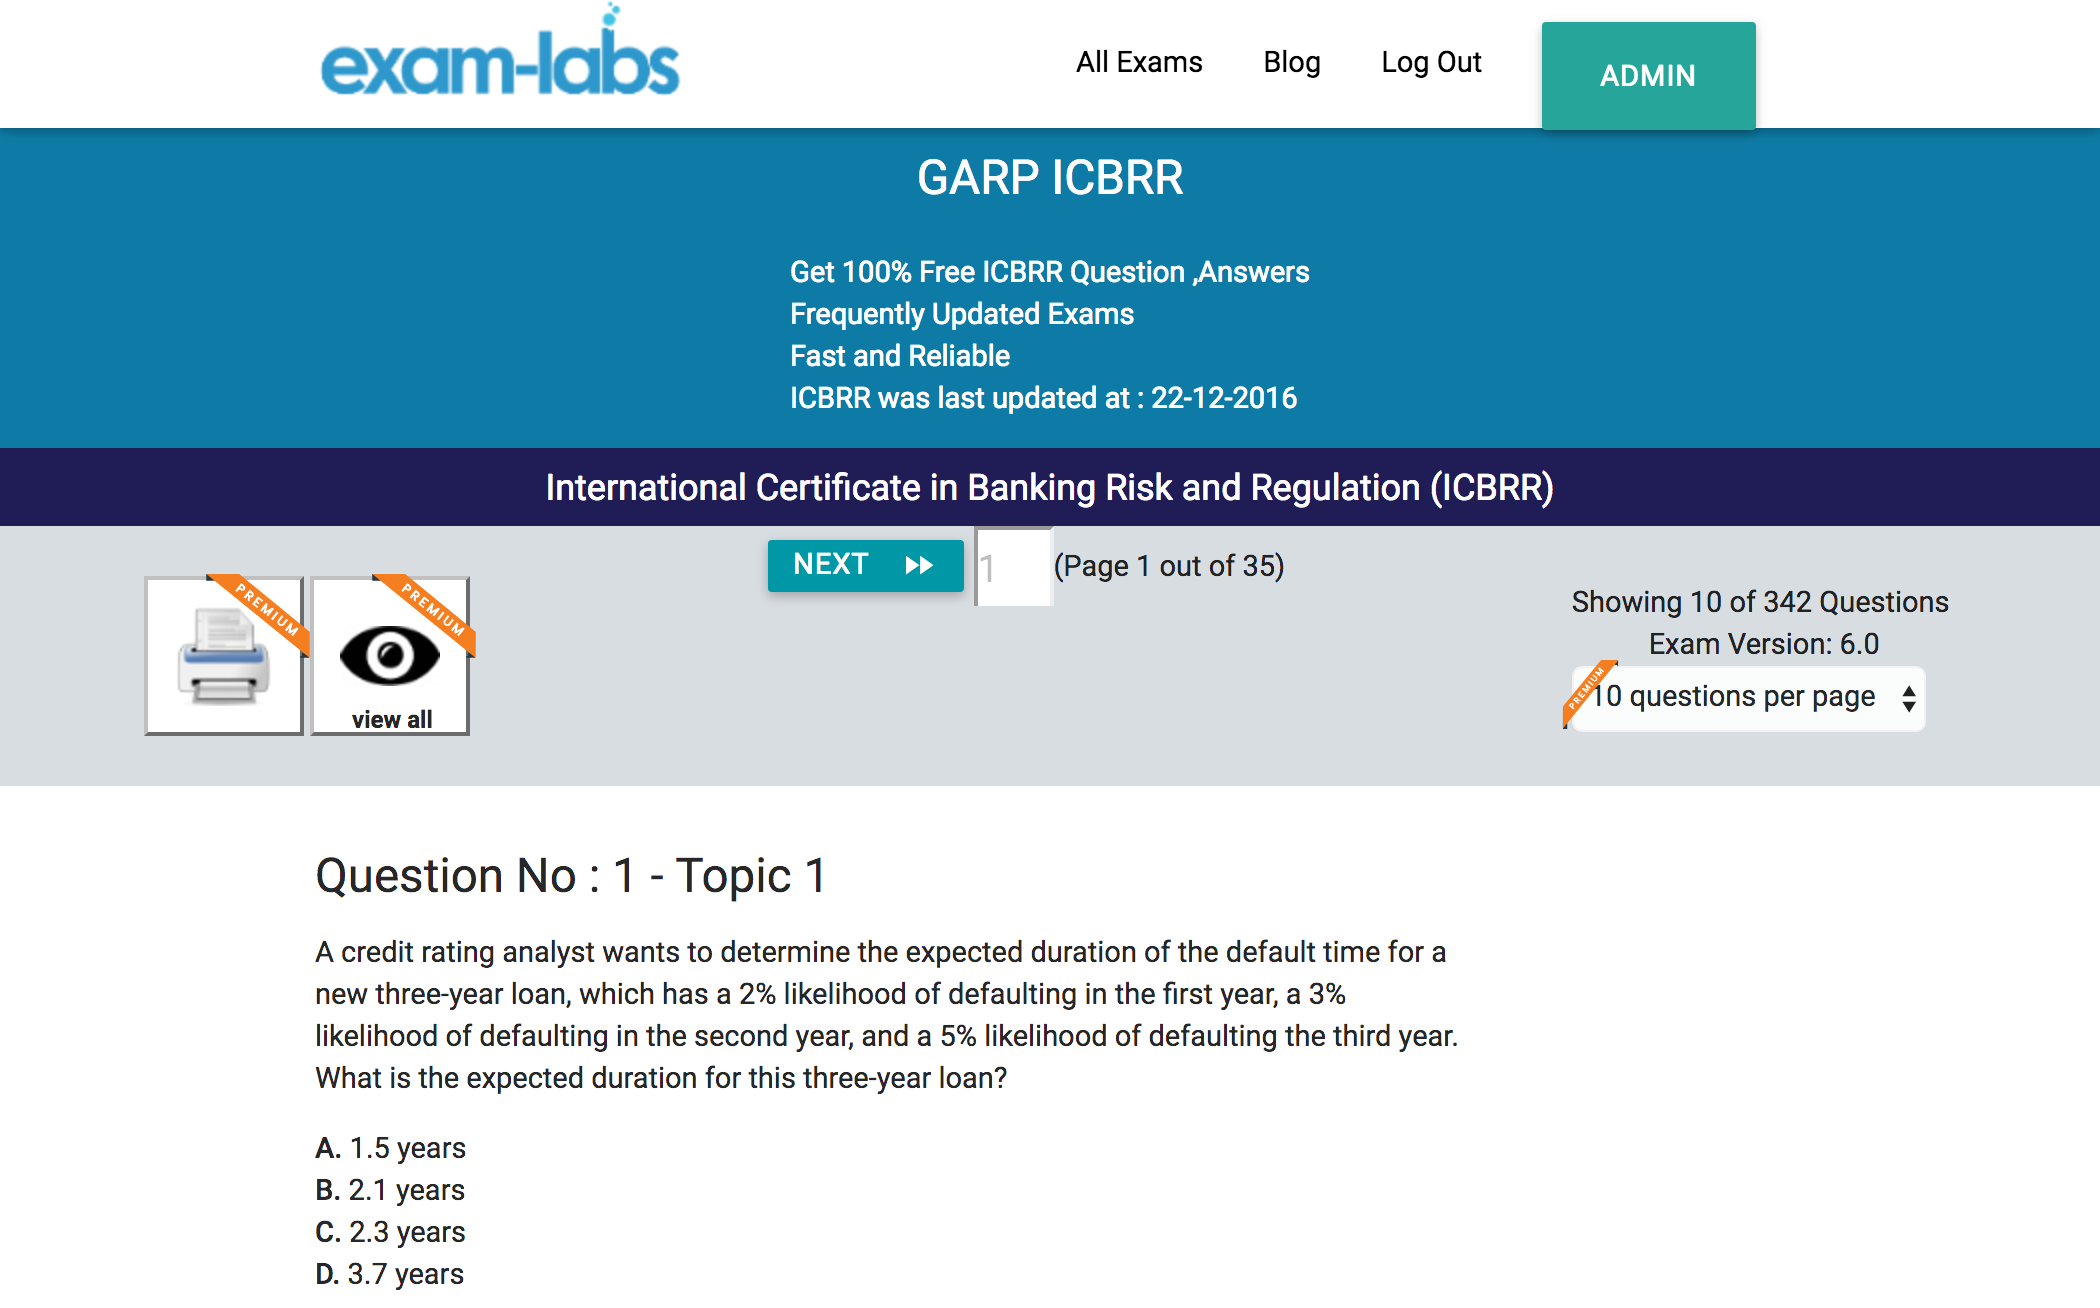 Icbrr garp practice exam questions 100 free exam labs garp icbrr international certificate in banking risk and regulation icbrr exam start icbrr exam yadclub Image collections